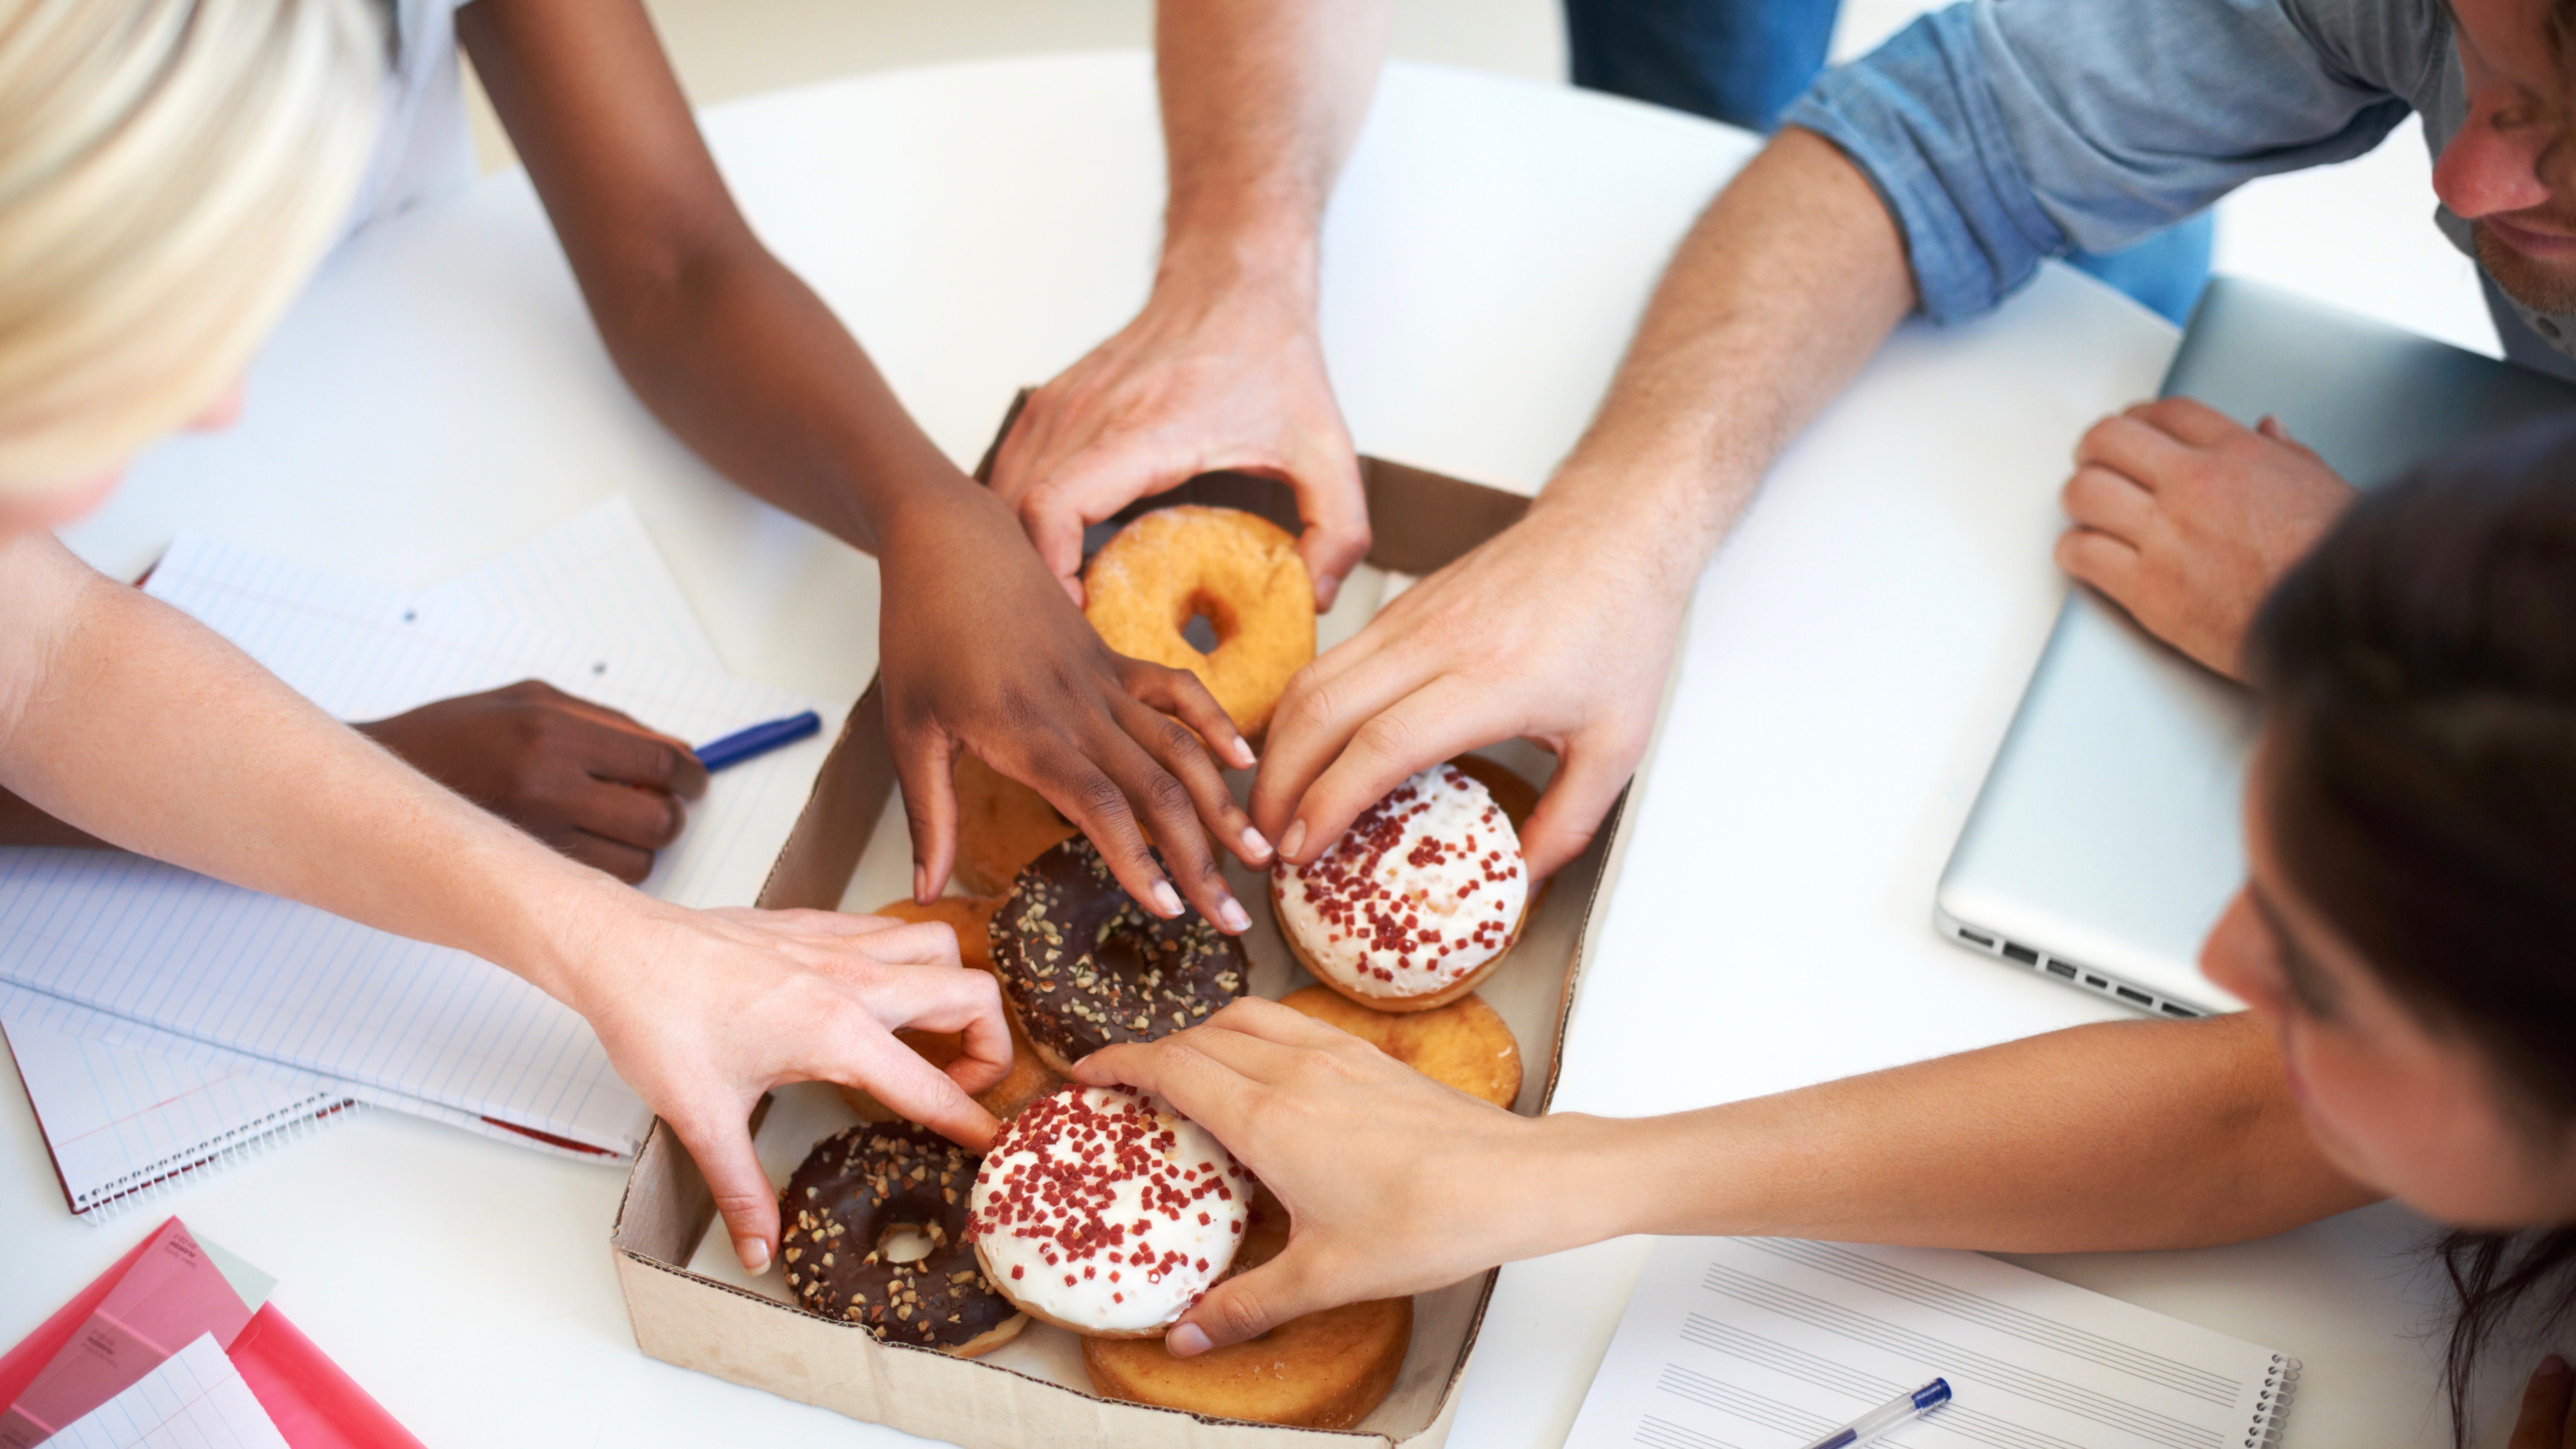 Doughnuts at the office